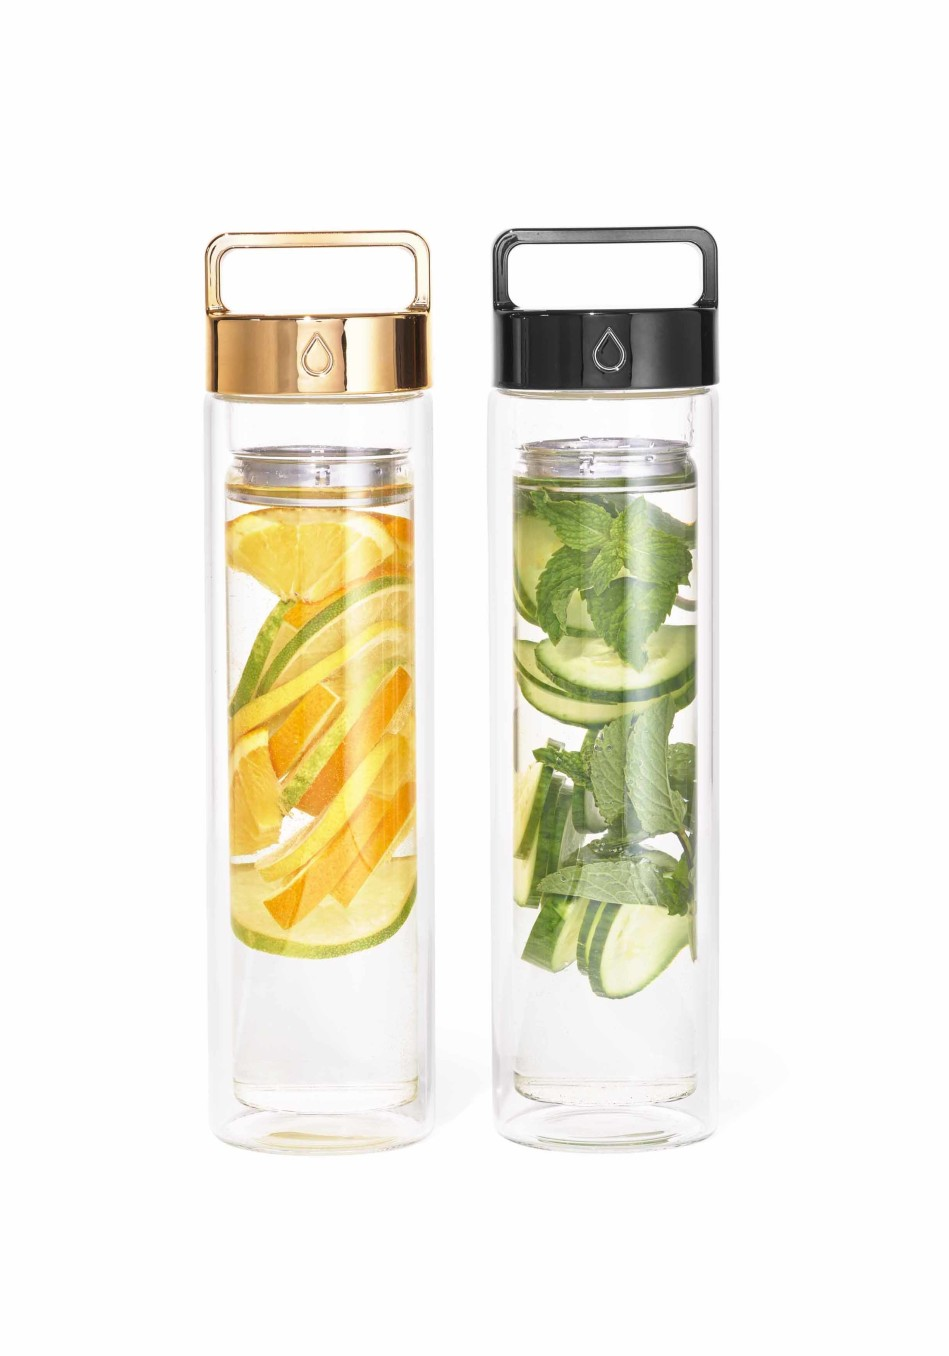 BKR Launches Its Popular Refillable Water Bottle in a ...